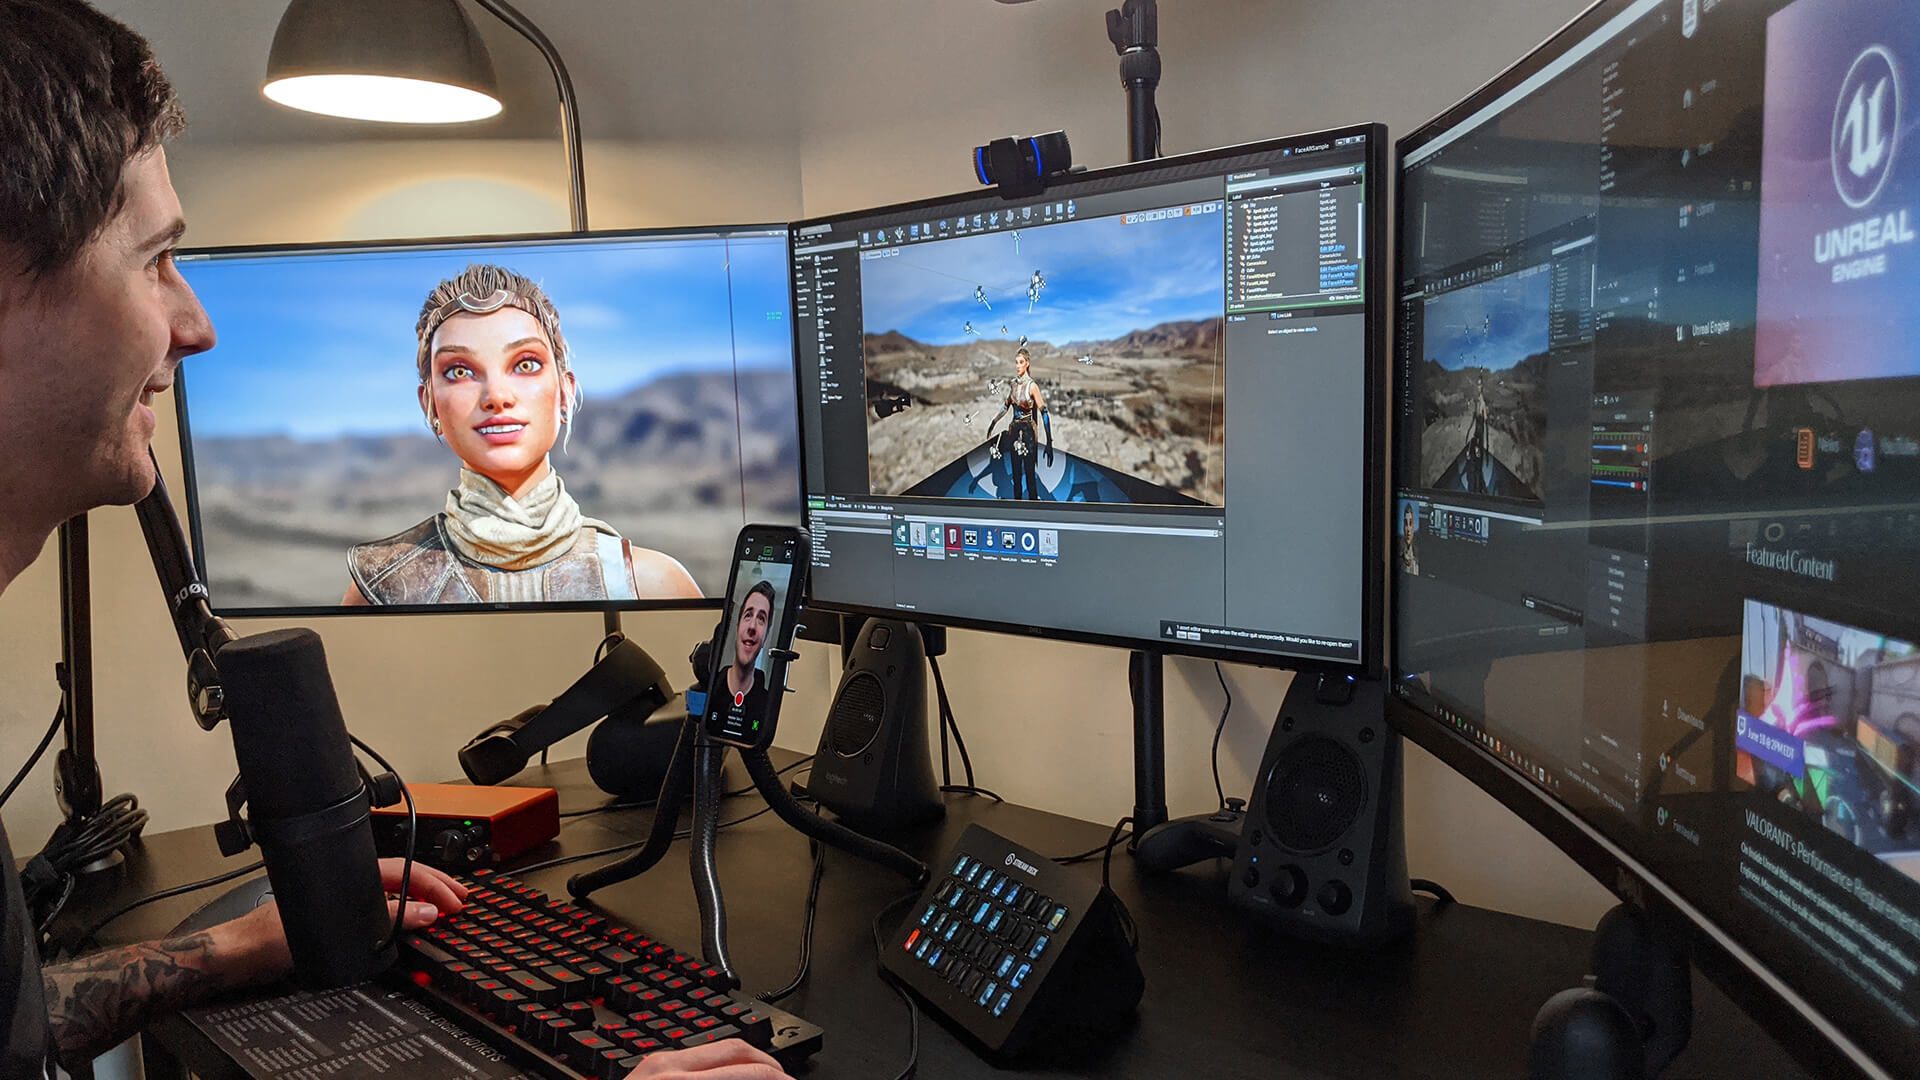 Epic S Unreal Engine Ios App Can Capture High Quality Facial Animations In Real Time Gamesradar